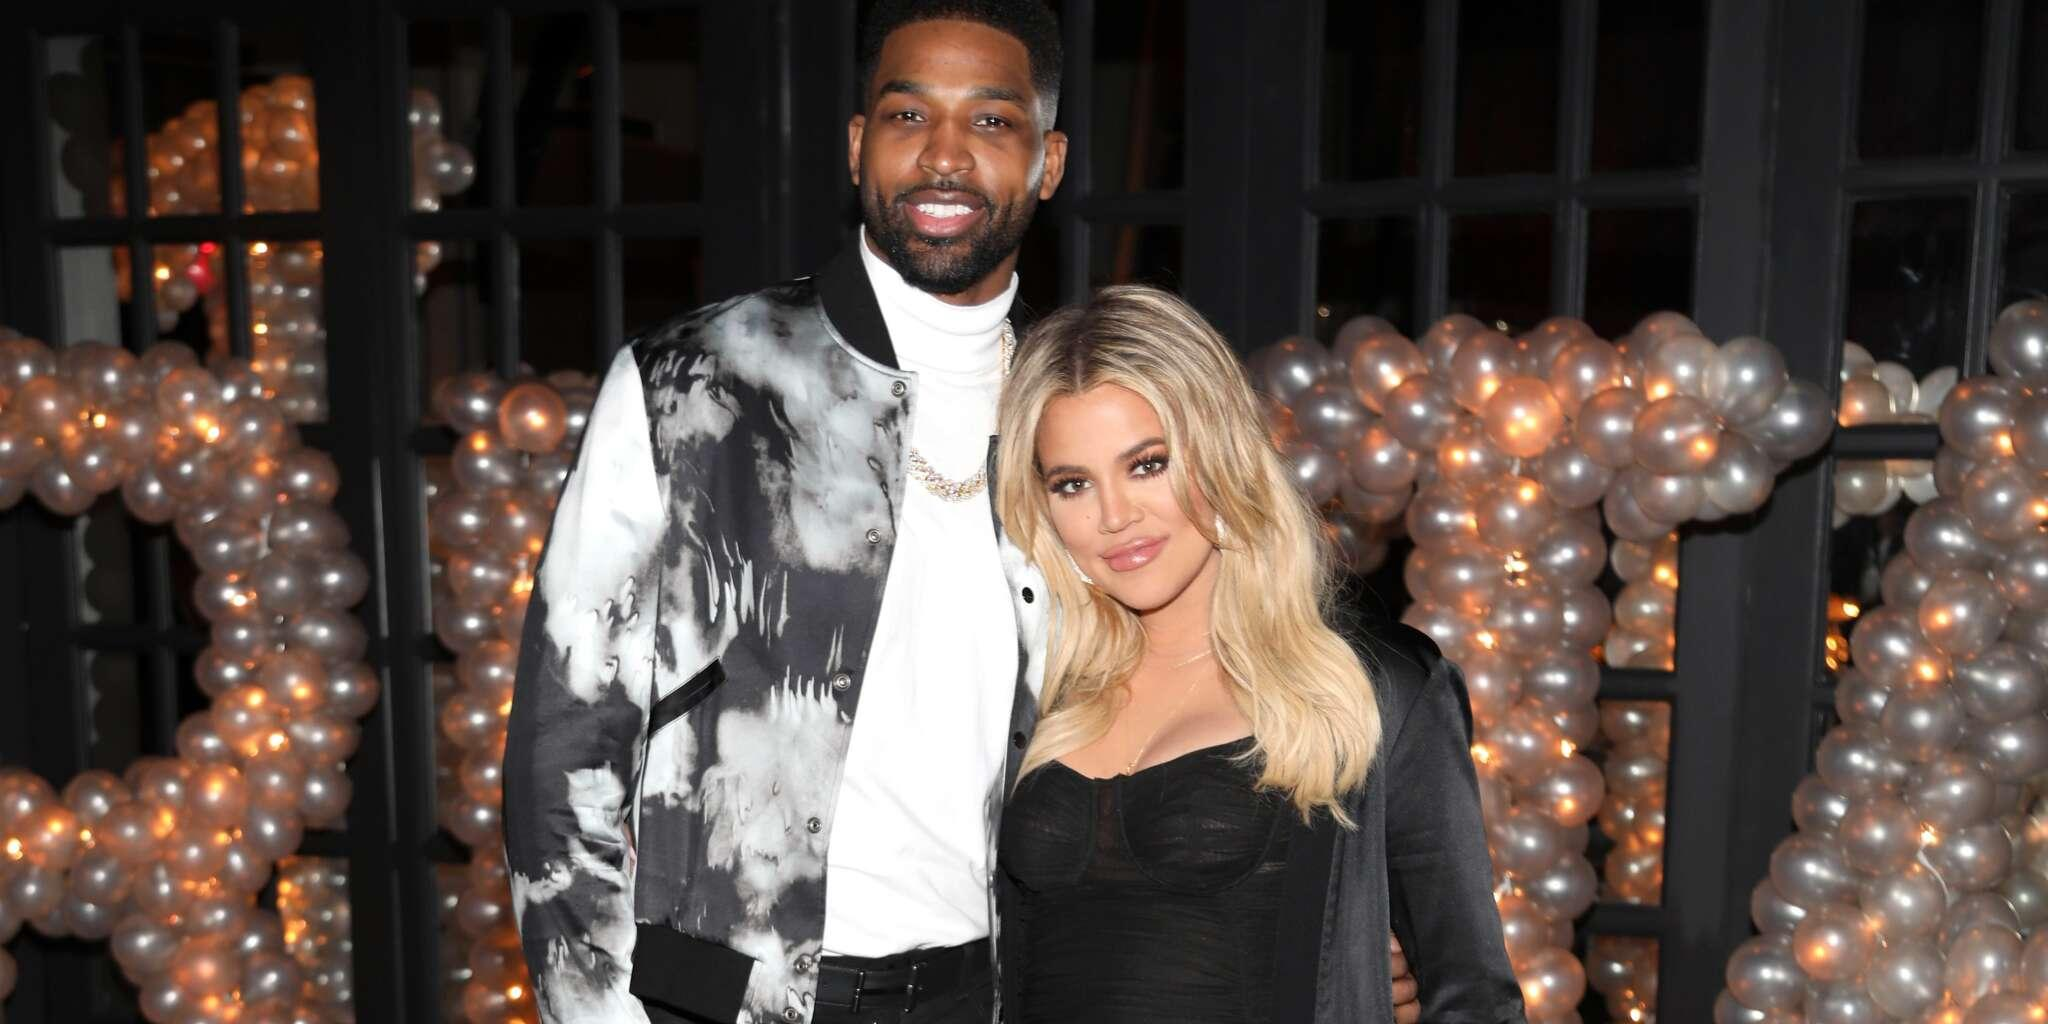 KUWTK: Khloe Kardashian Comes Home From Vacation To THIS Sweet Surprise Planned By Tristan Thompson!